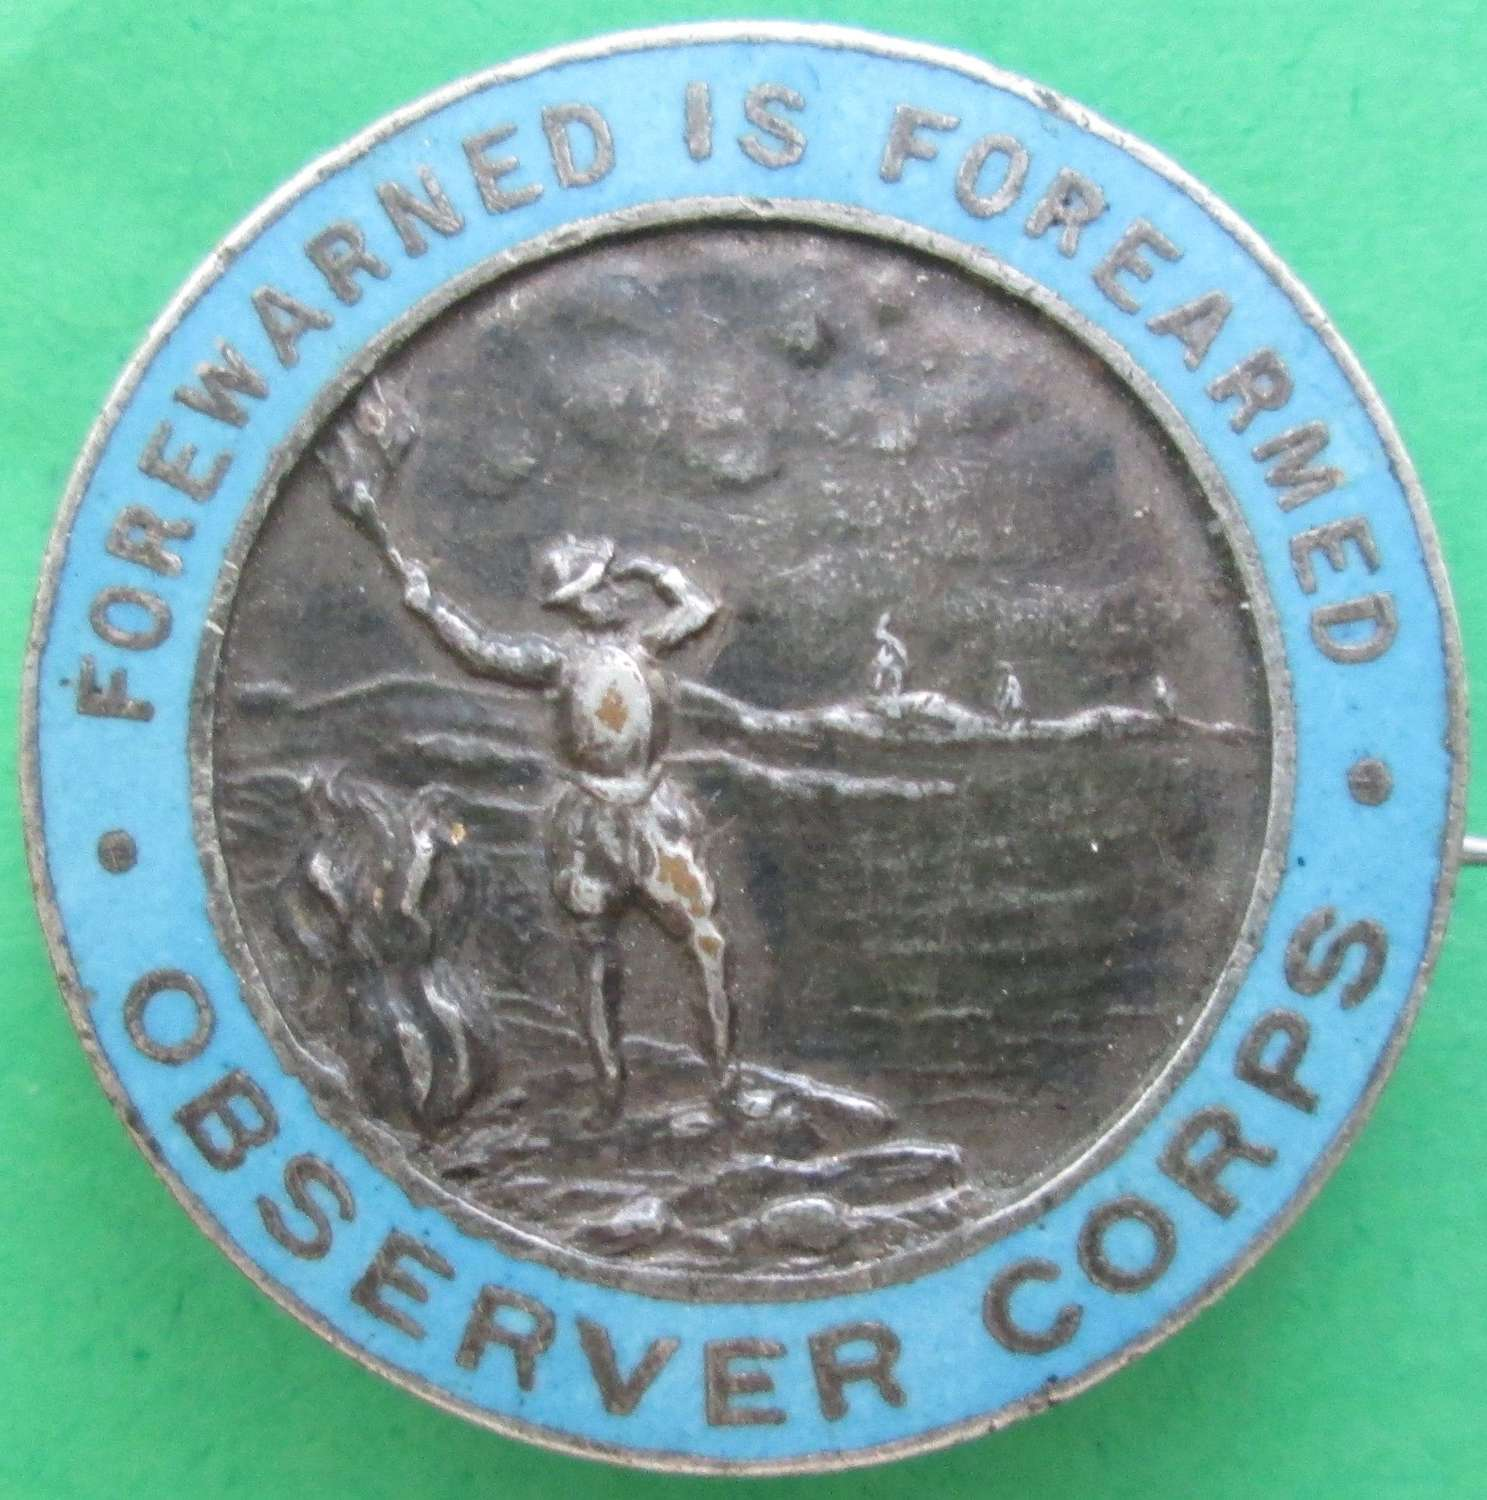 AN OBSERVER CORPS PIN BADGE